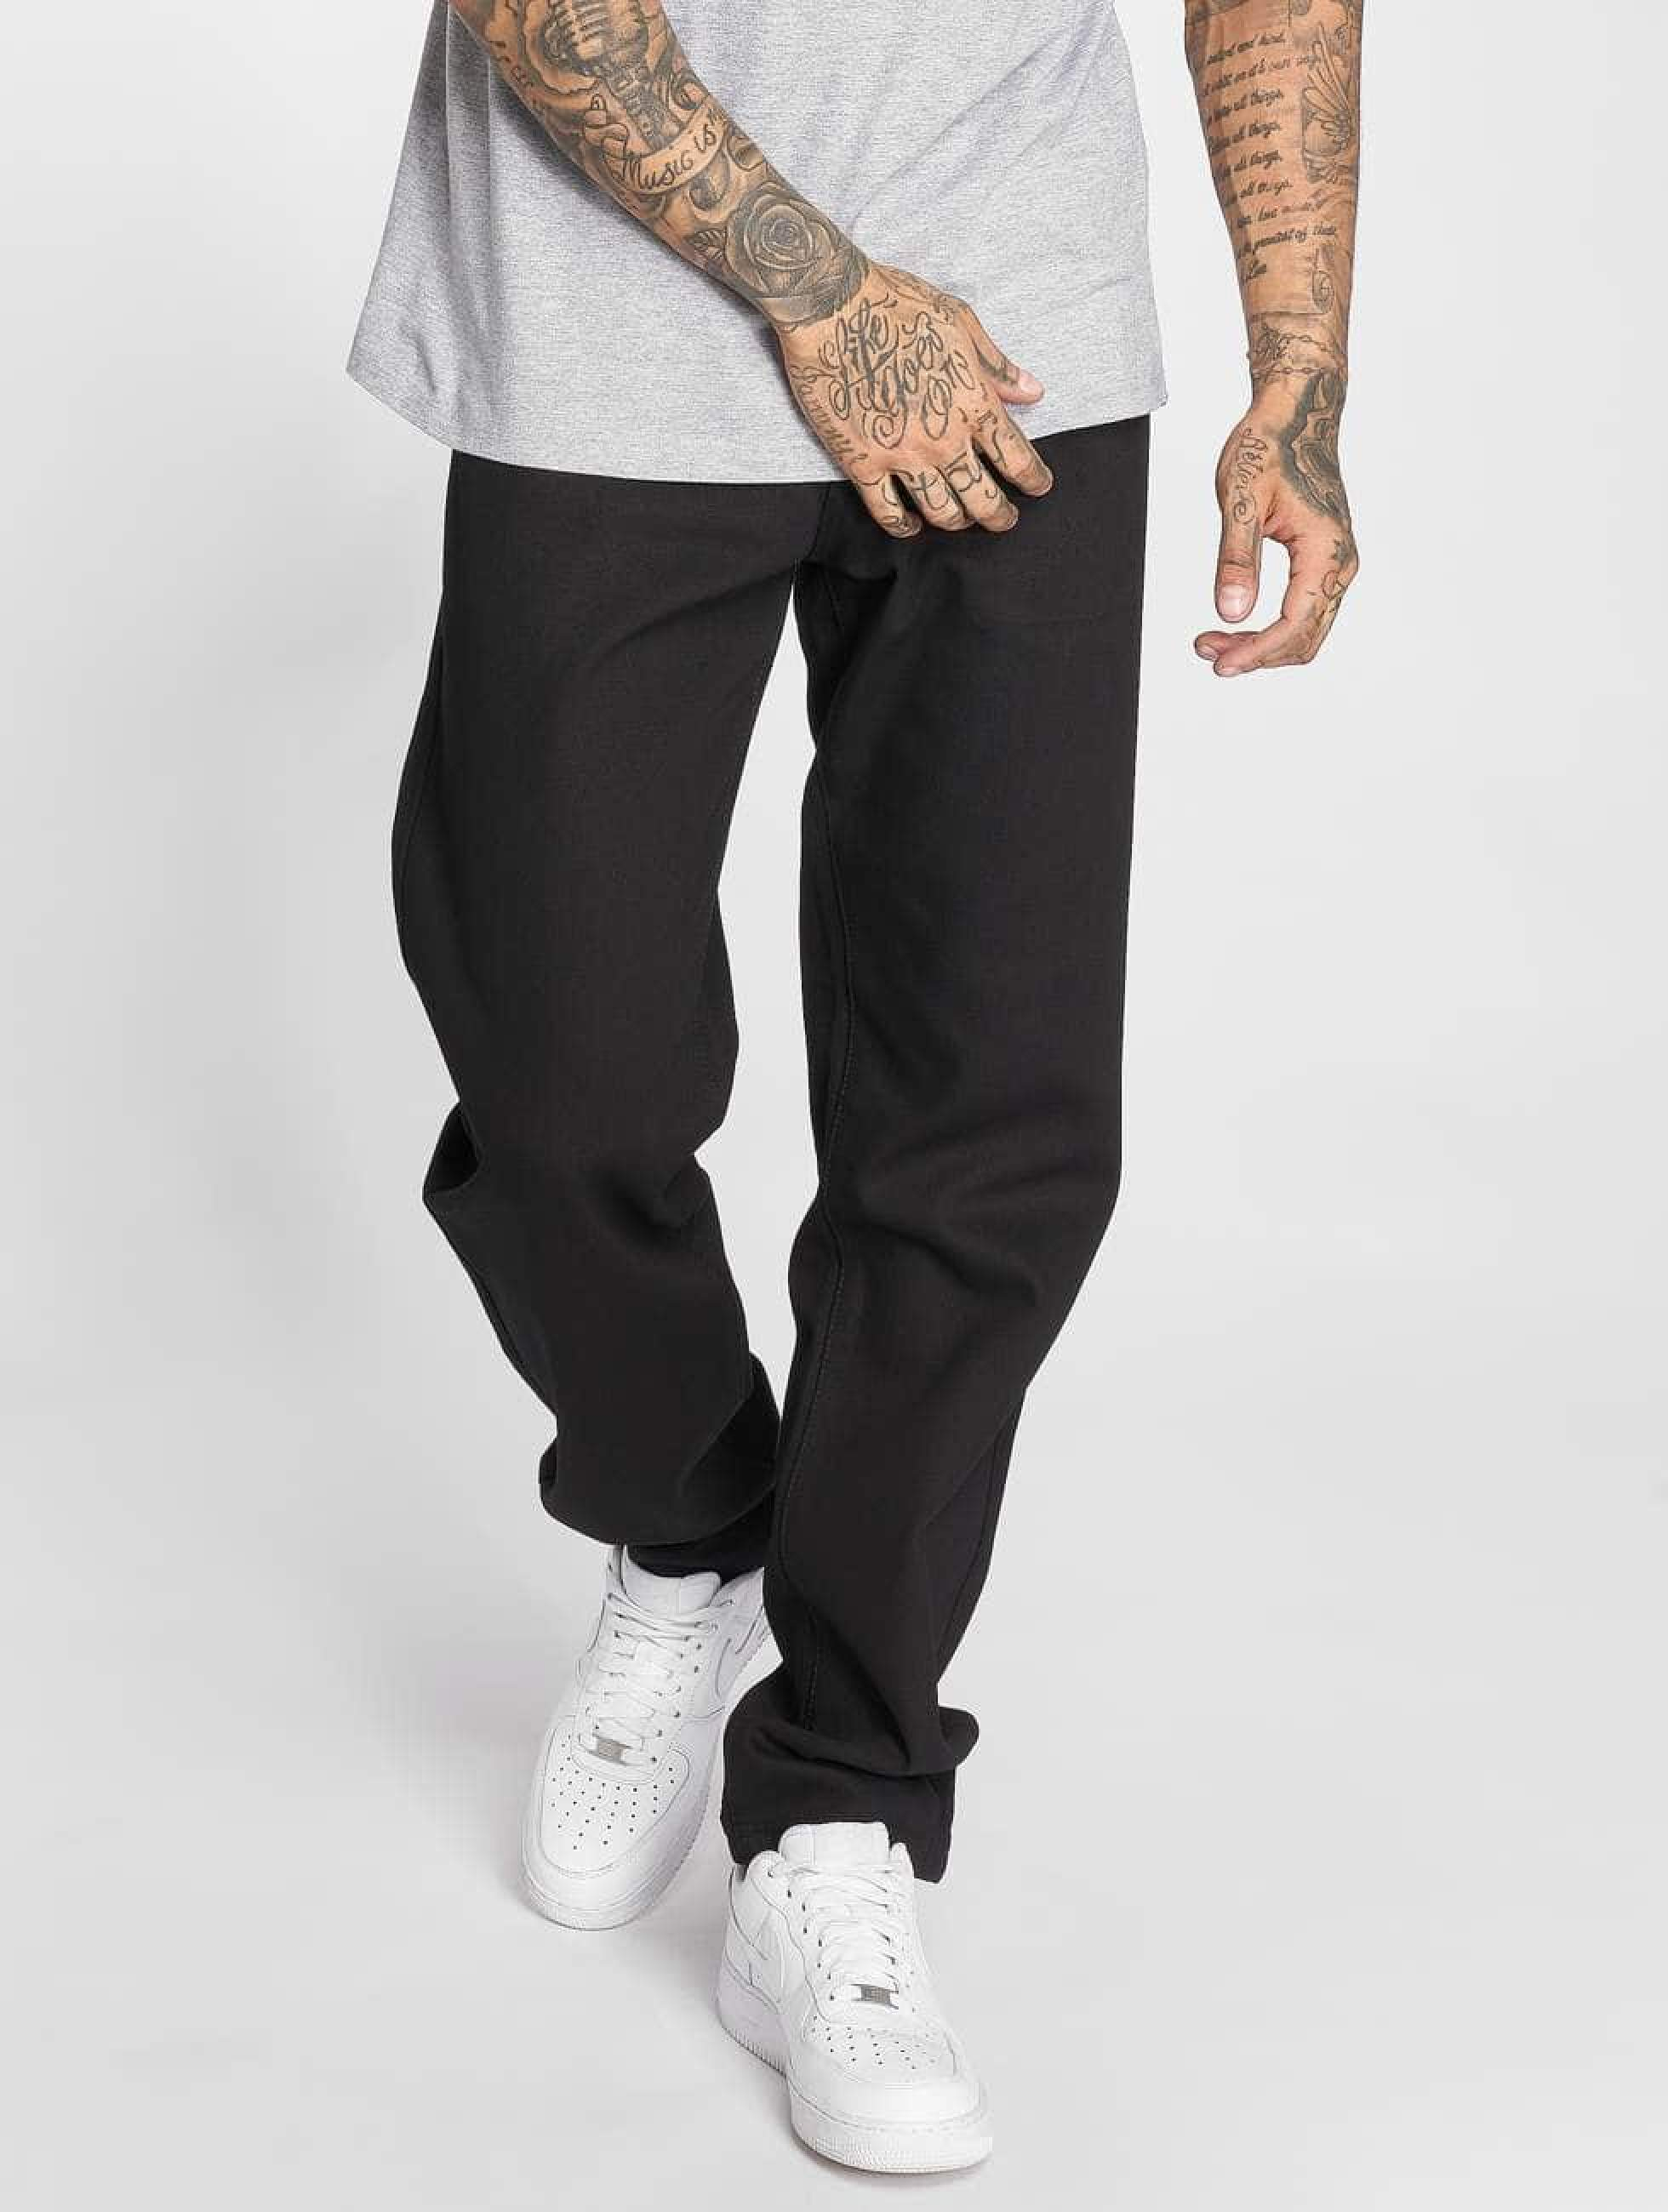 Thug Life / Carrot Fit Jeans B . Denim in black W 30 L 30